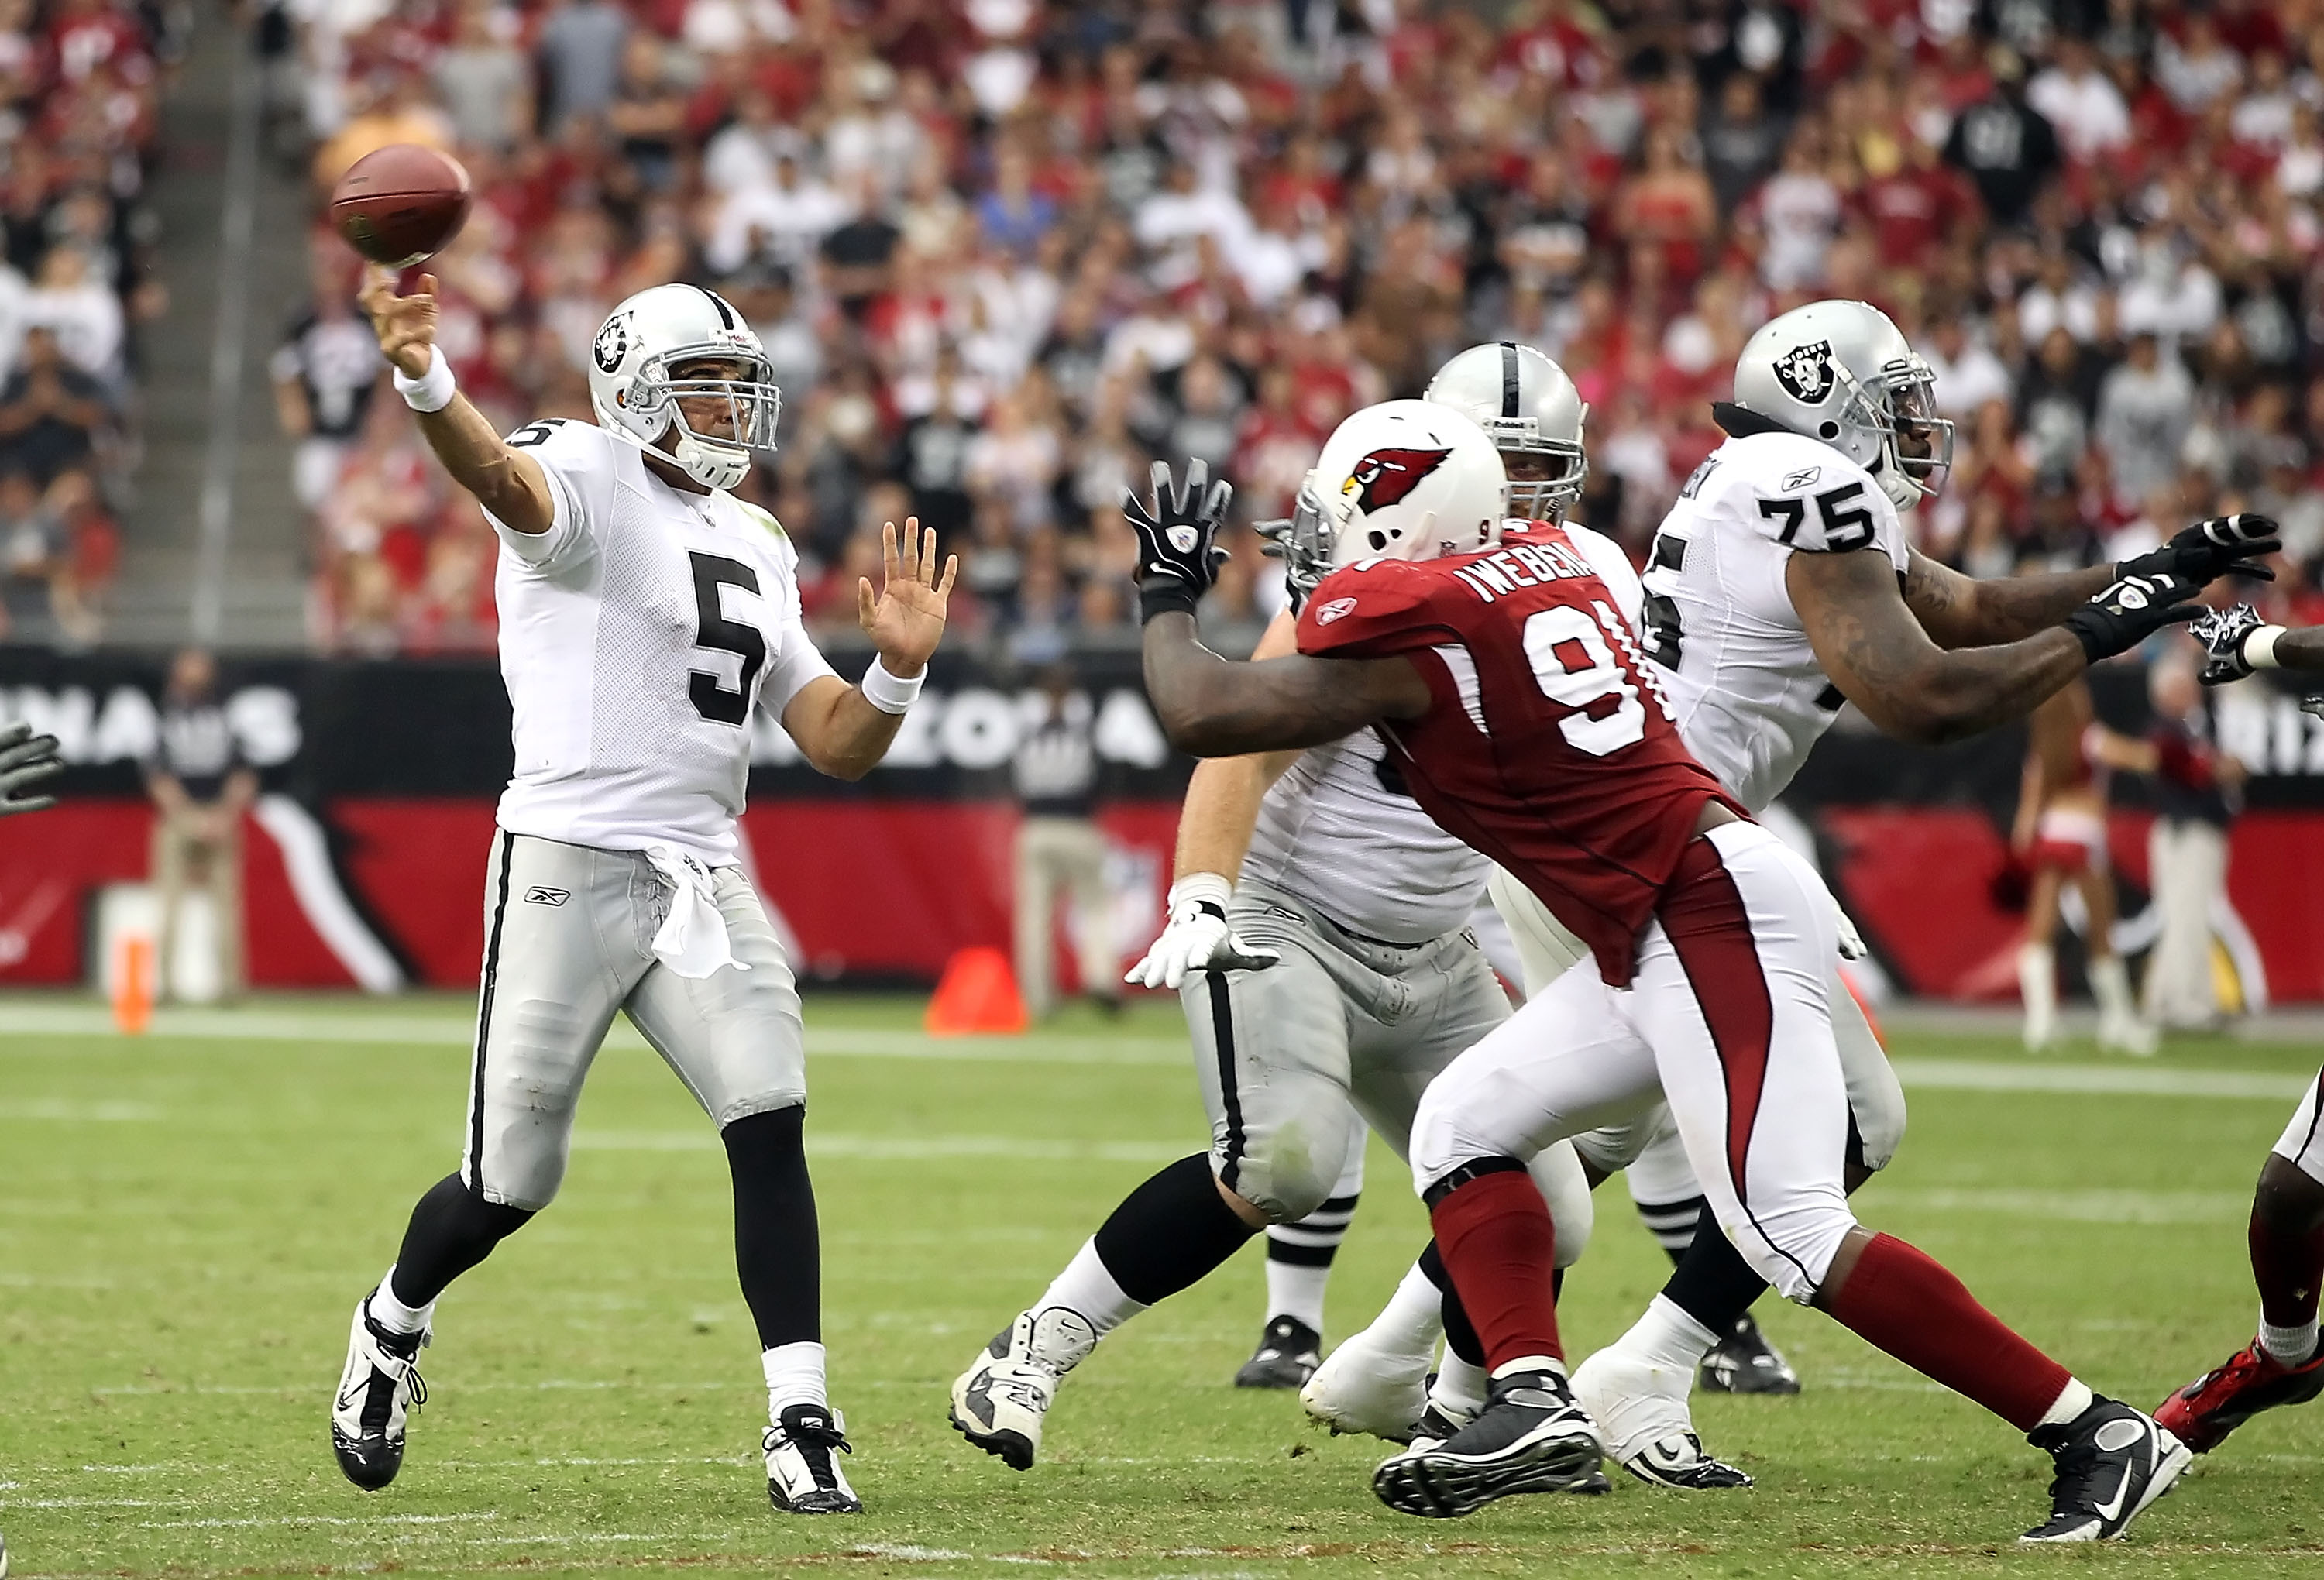 GLENDALE, AZ - SEPTEMBER 26:  Quarterback Bruce Gradkowski #5 of the Oakland Raiders throws a pass during the NFL game against the Arizona Cardinals at the University of Phoenix Stadium on September 26, 2010 in Glendale, Arizona.  The Cardinals defeated t